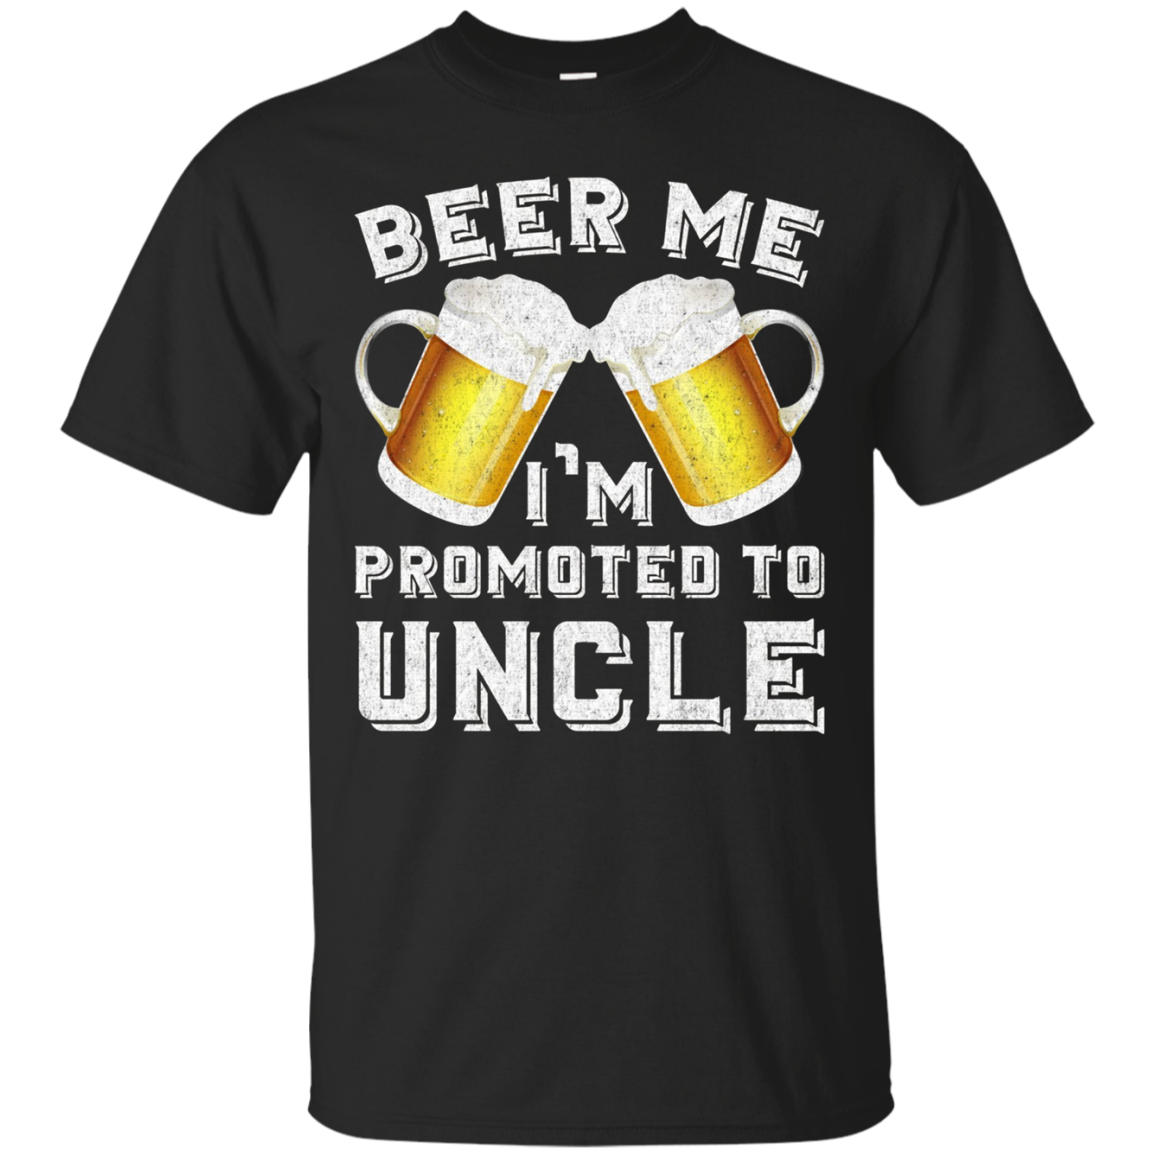 Beer Me I'm Promoted to Uncle - Baby Announcement Shirt